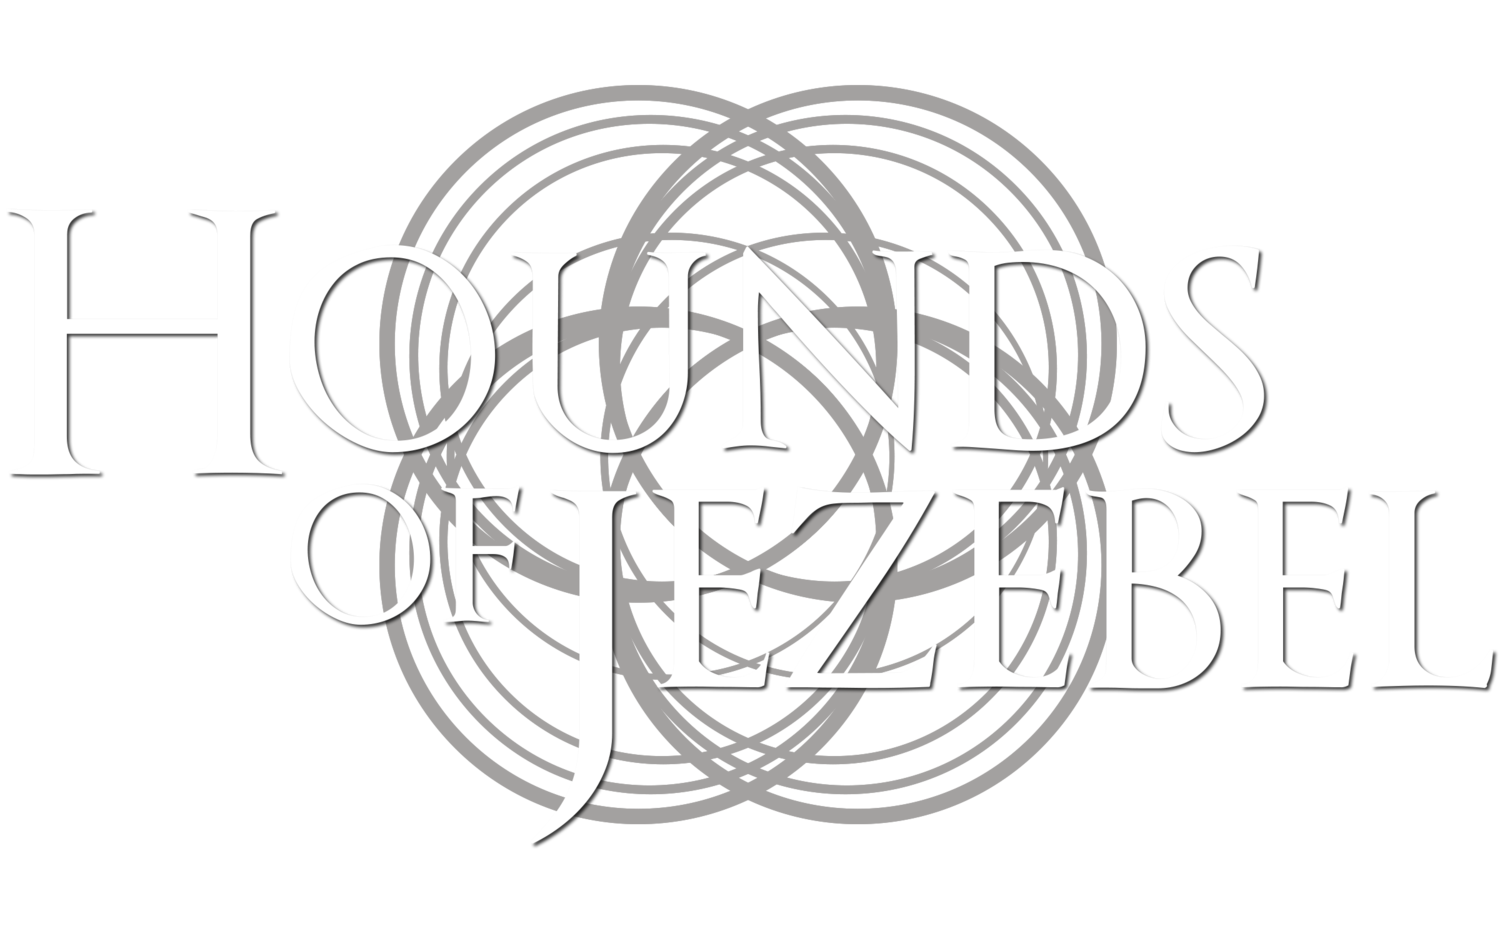 Hounds of Jezebel